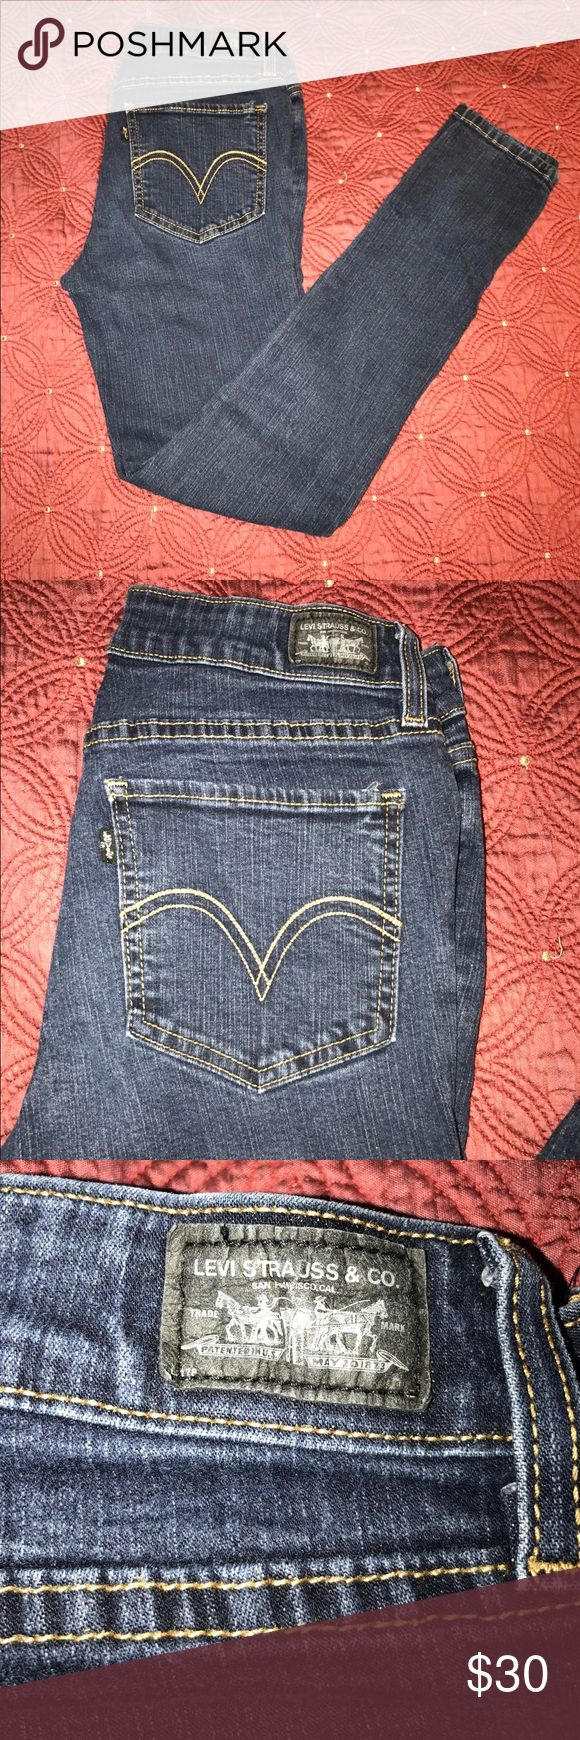 Women's Dark Wash Levi's Jeans size 11M These are size 11M dark wash jeans. They are pre owned but in great condition. Levi's Jeans Skinny